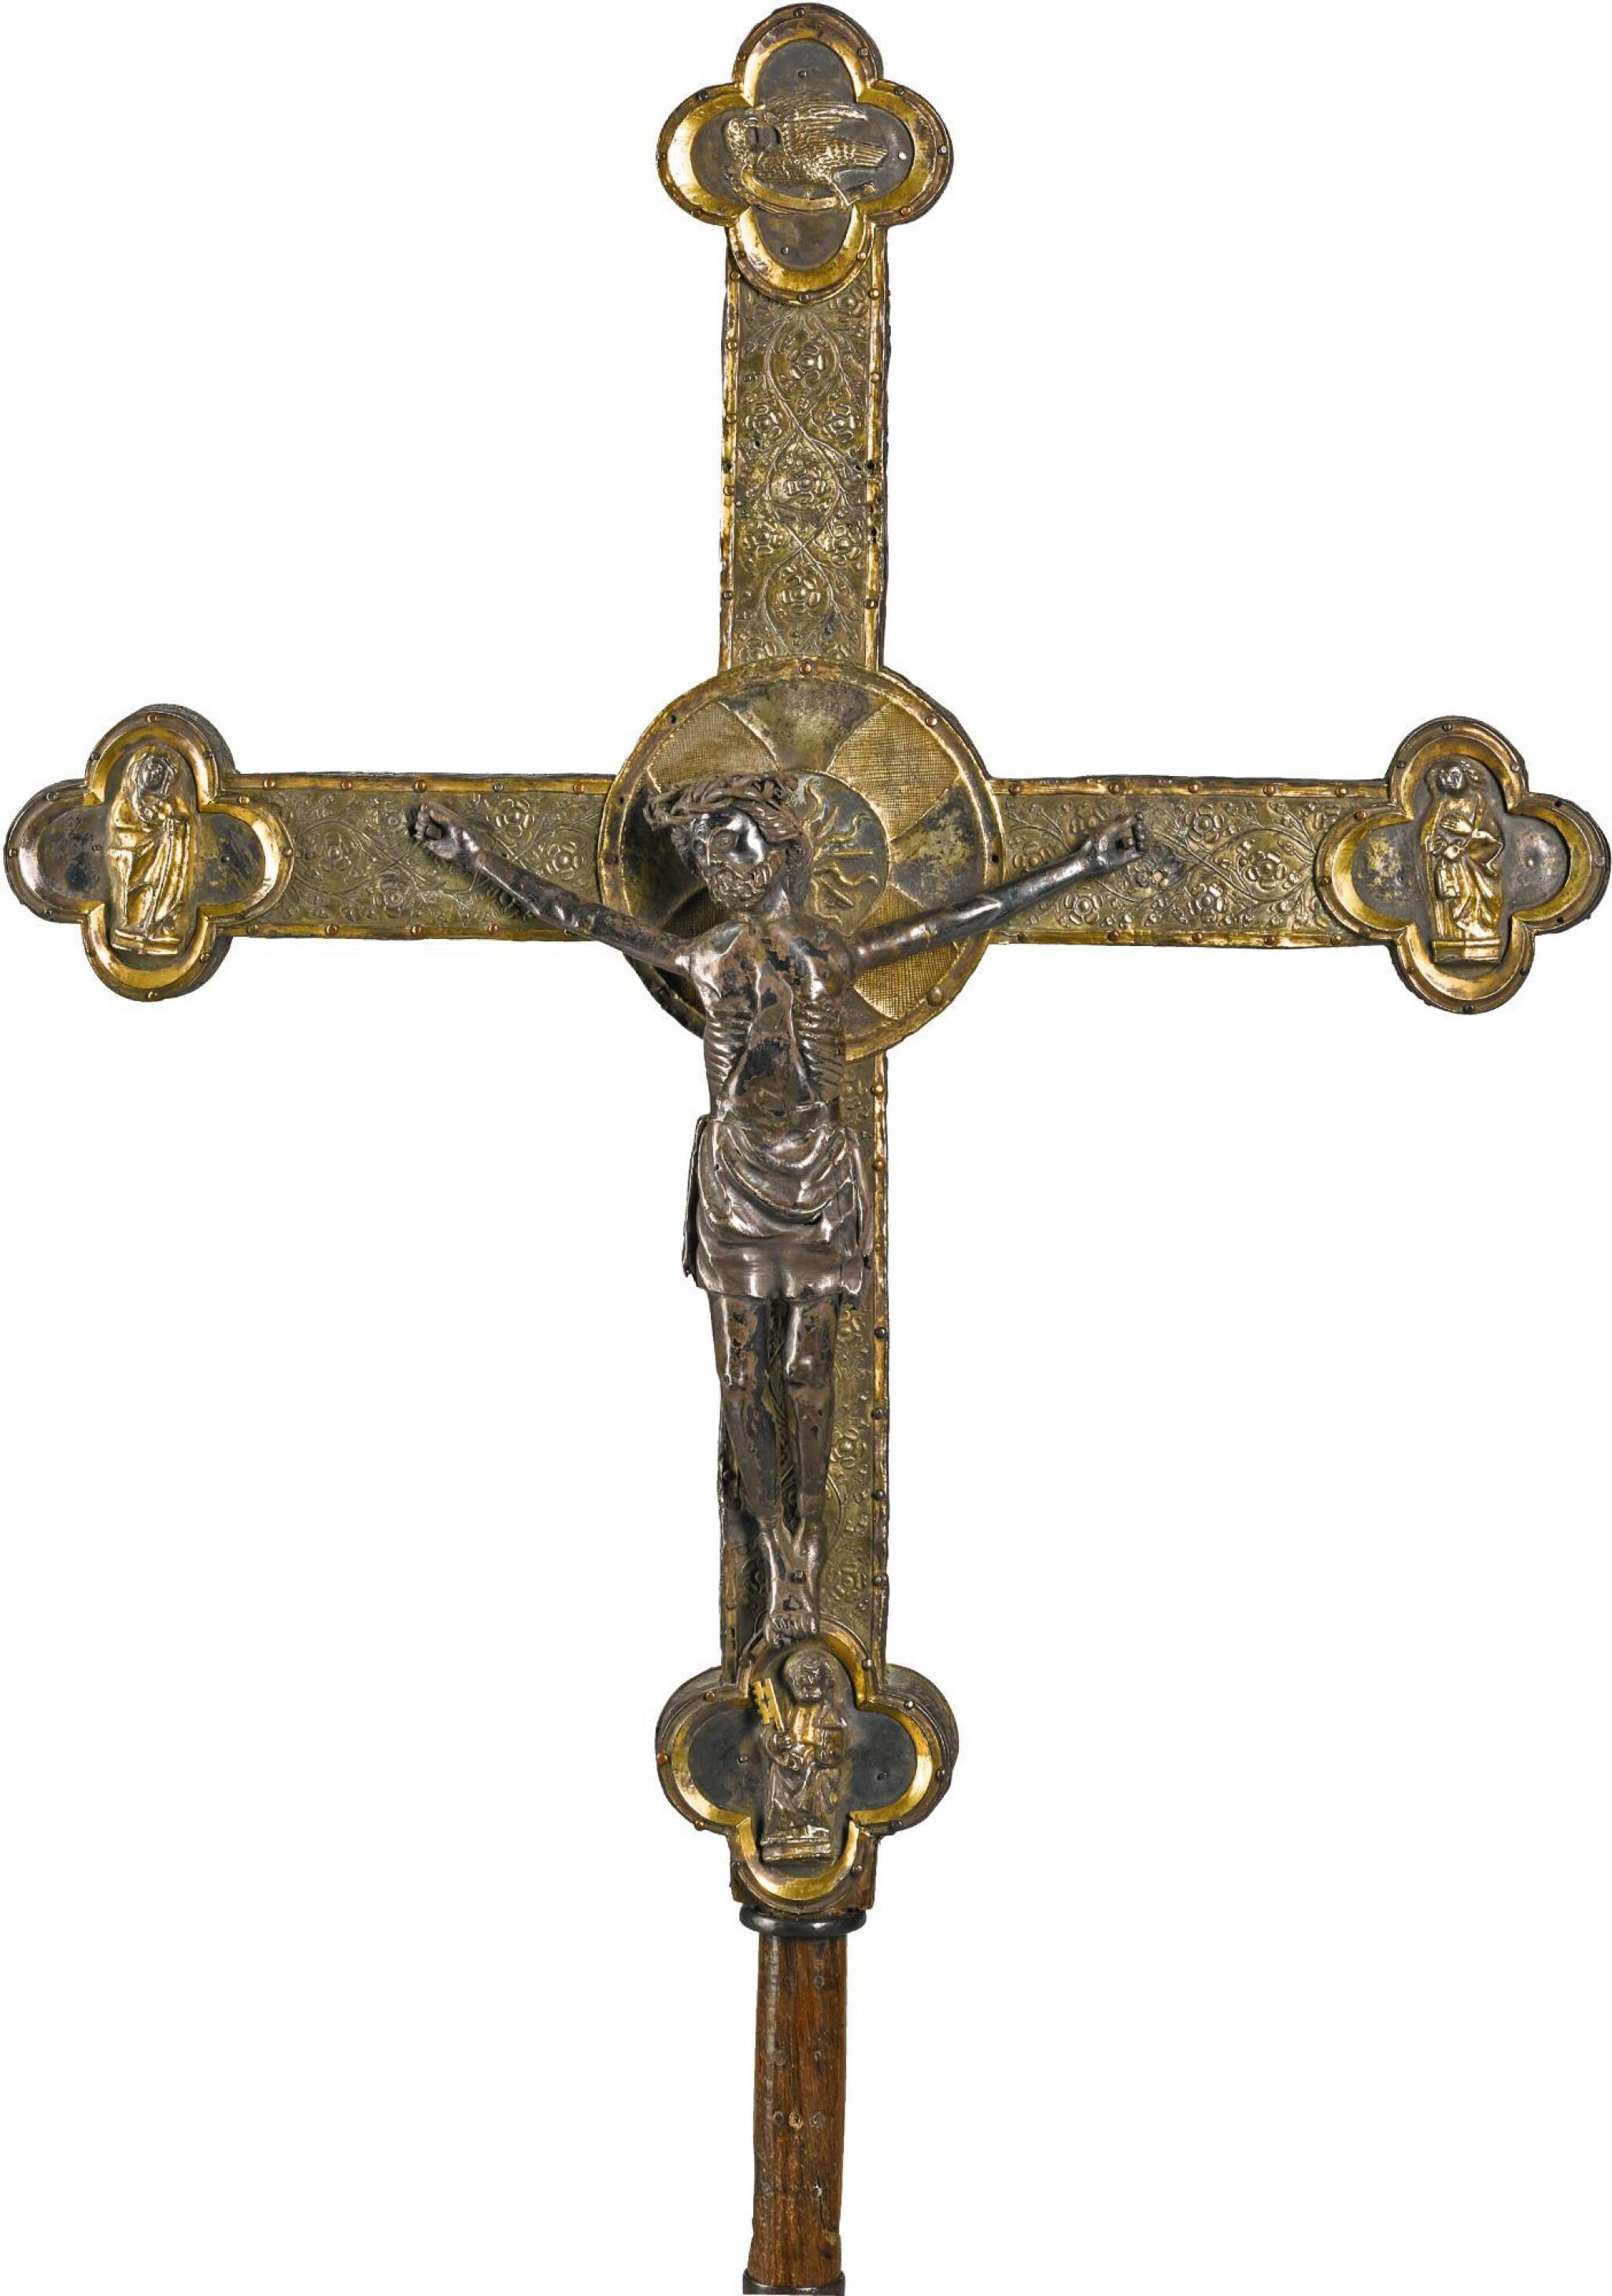 ITALIAN, 15TH CENTURY AND LATER | PROCESSIONAL CROSS WITH THE CRUCIFIED CHRIST